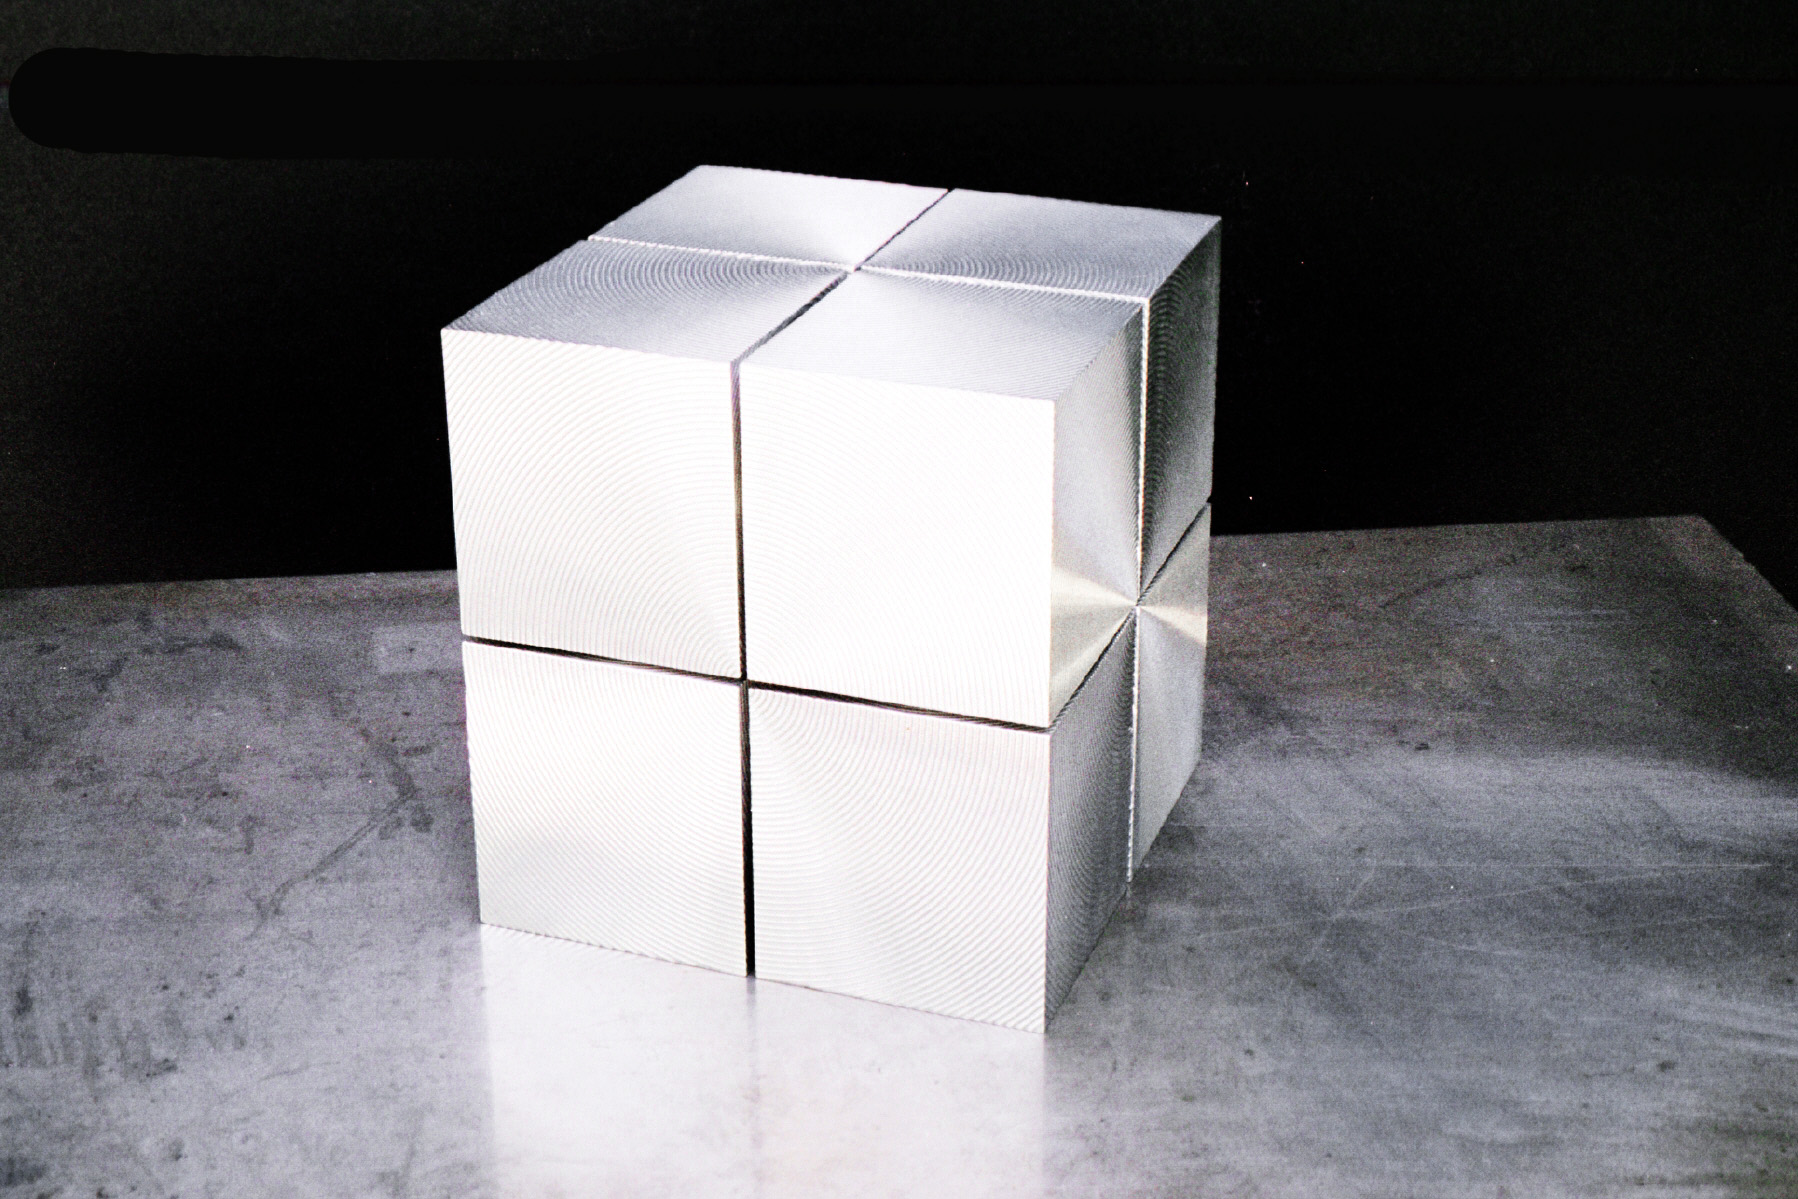 superstring cube closed.JPG